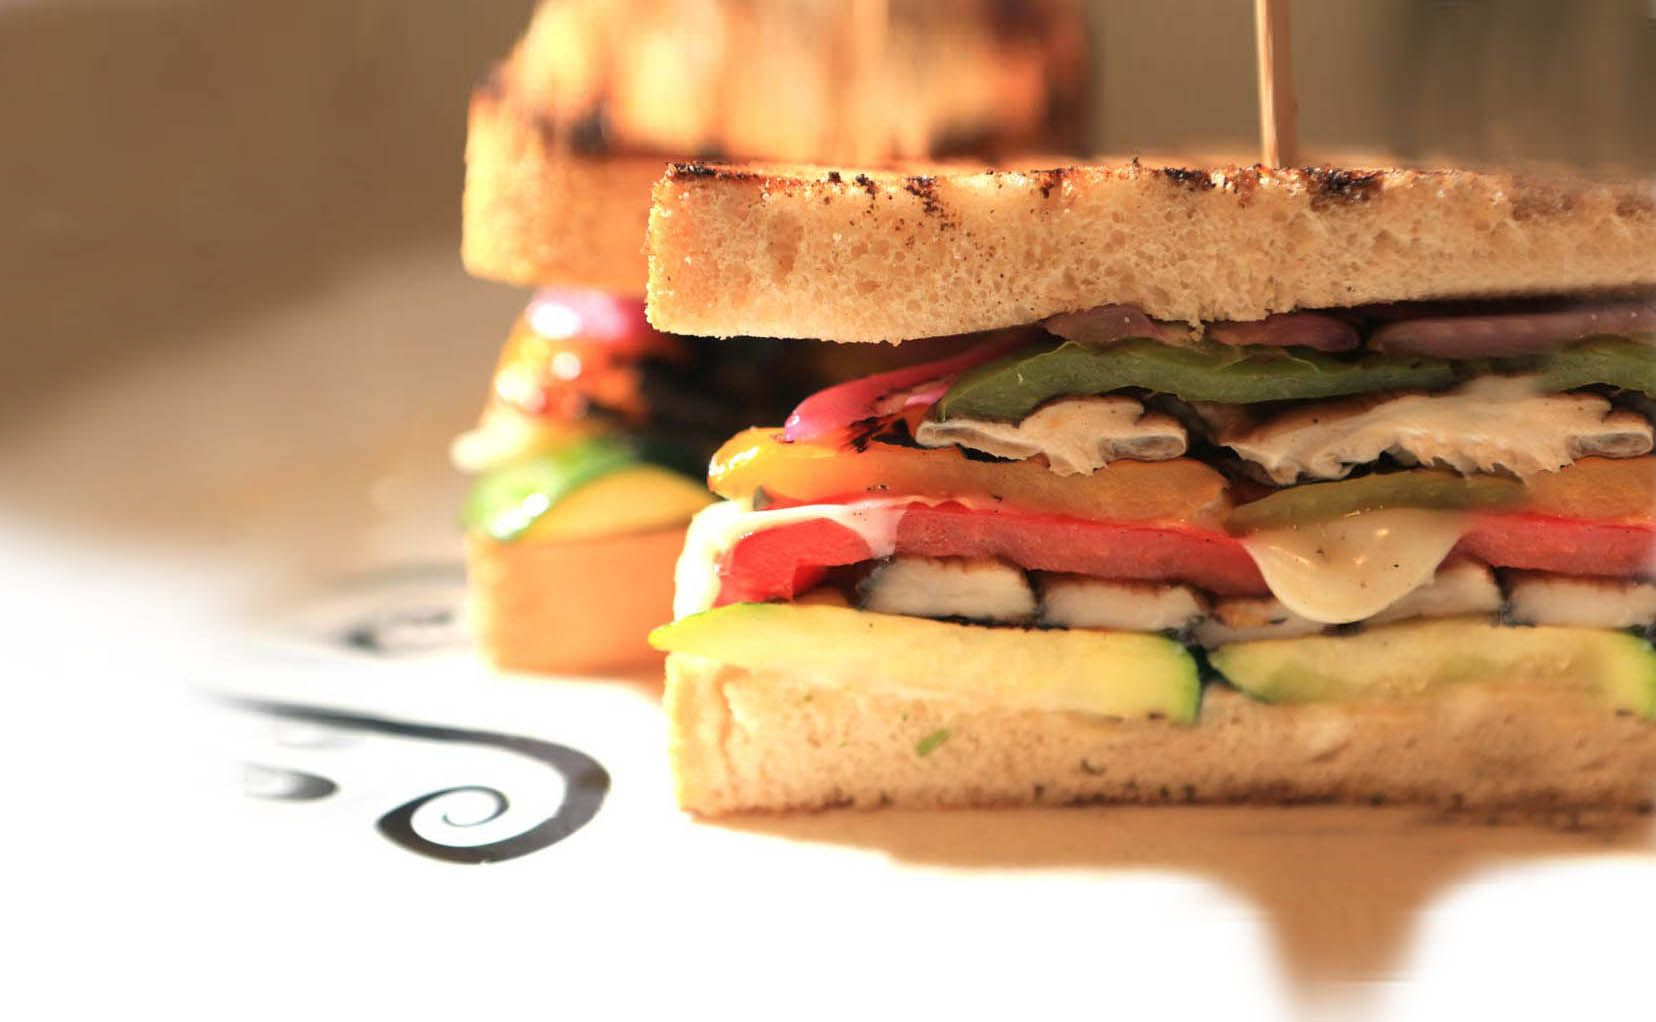 A new cafe with a calm ambiance opens its doors in Arima Trinidad. A classy hang out spot with gourmet sandwiches.